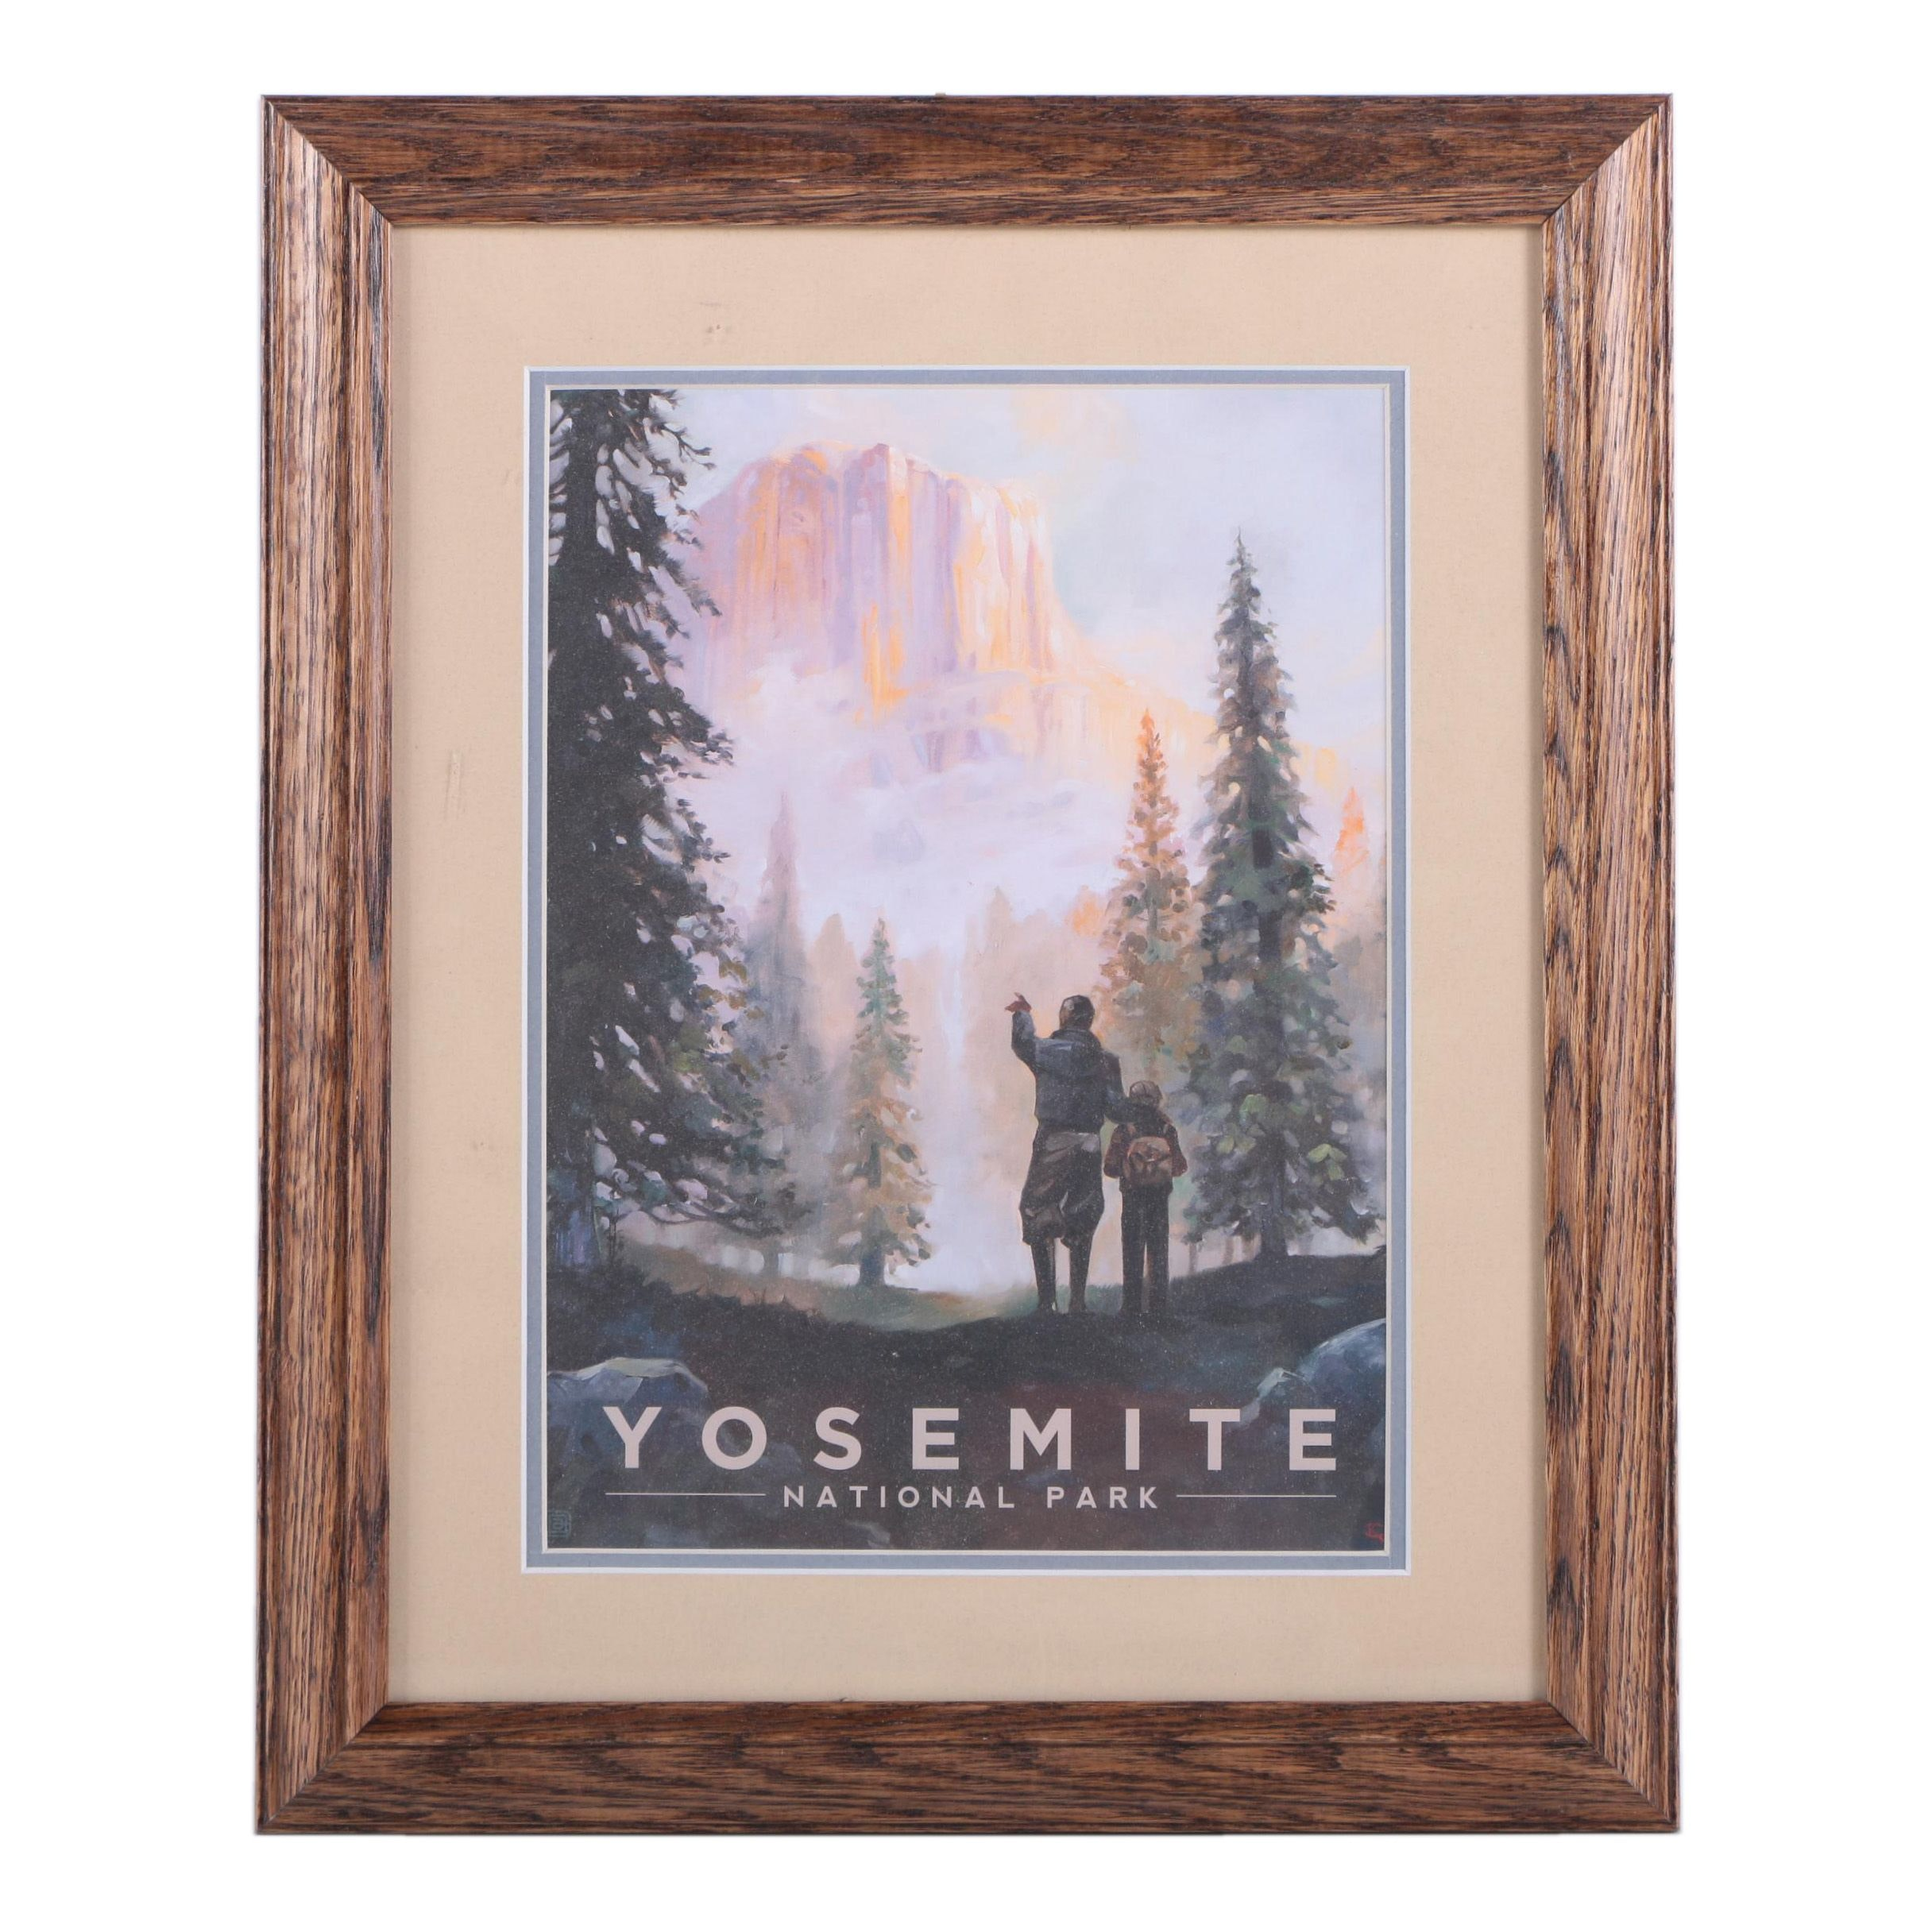 Offset Lithograph on Paper After Vintage Poster for Yosemite National Park